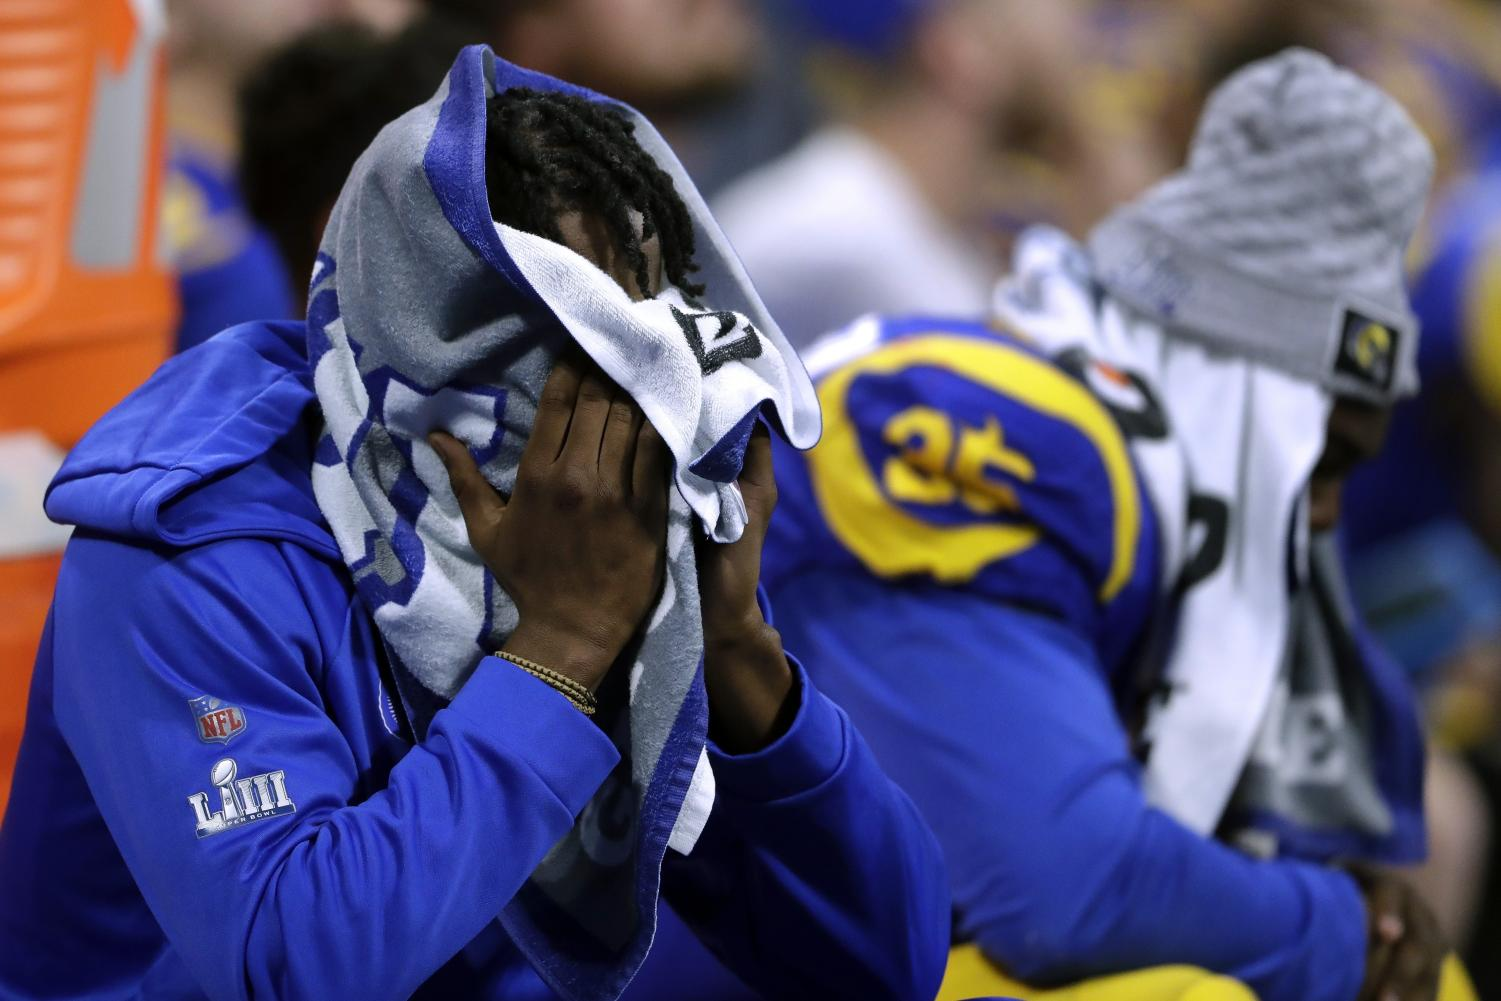 Los Angeles Rams players sit dejected on the bench during the second half of the NFL Super Bowl 53 football game against the New England Patriots, Sunday, Feb. 3, 2019, in Atlanta. (AP Photo/John Bazemore)